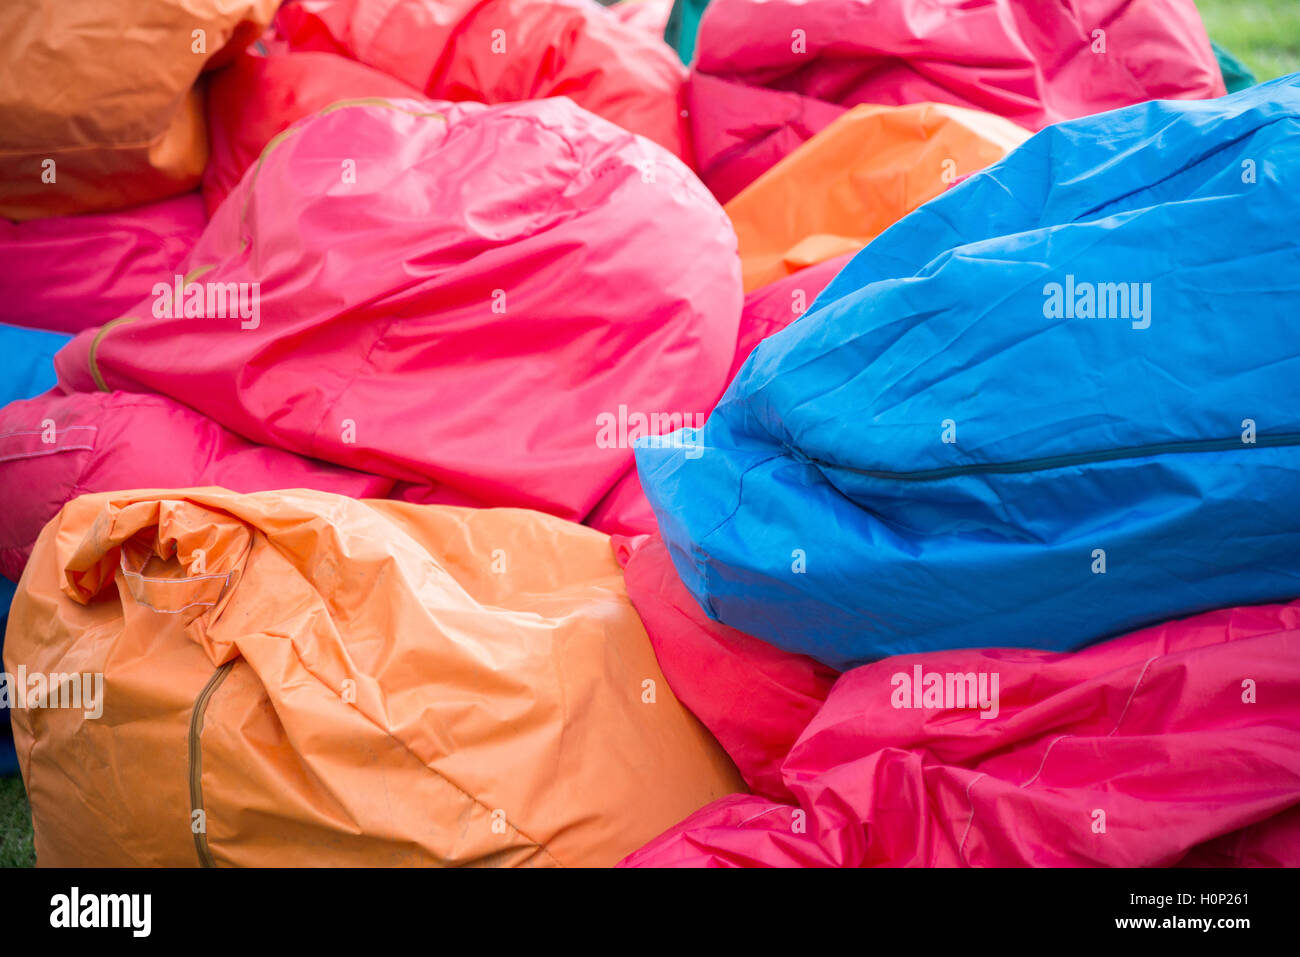 shapeless colored Bean bag chair for sitting - Stock Image